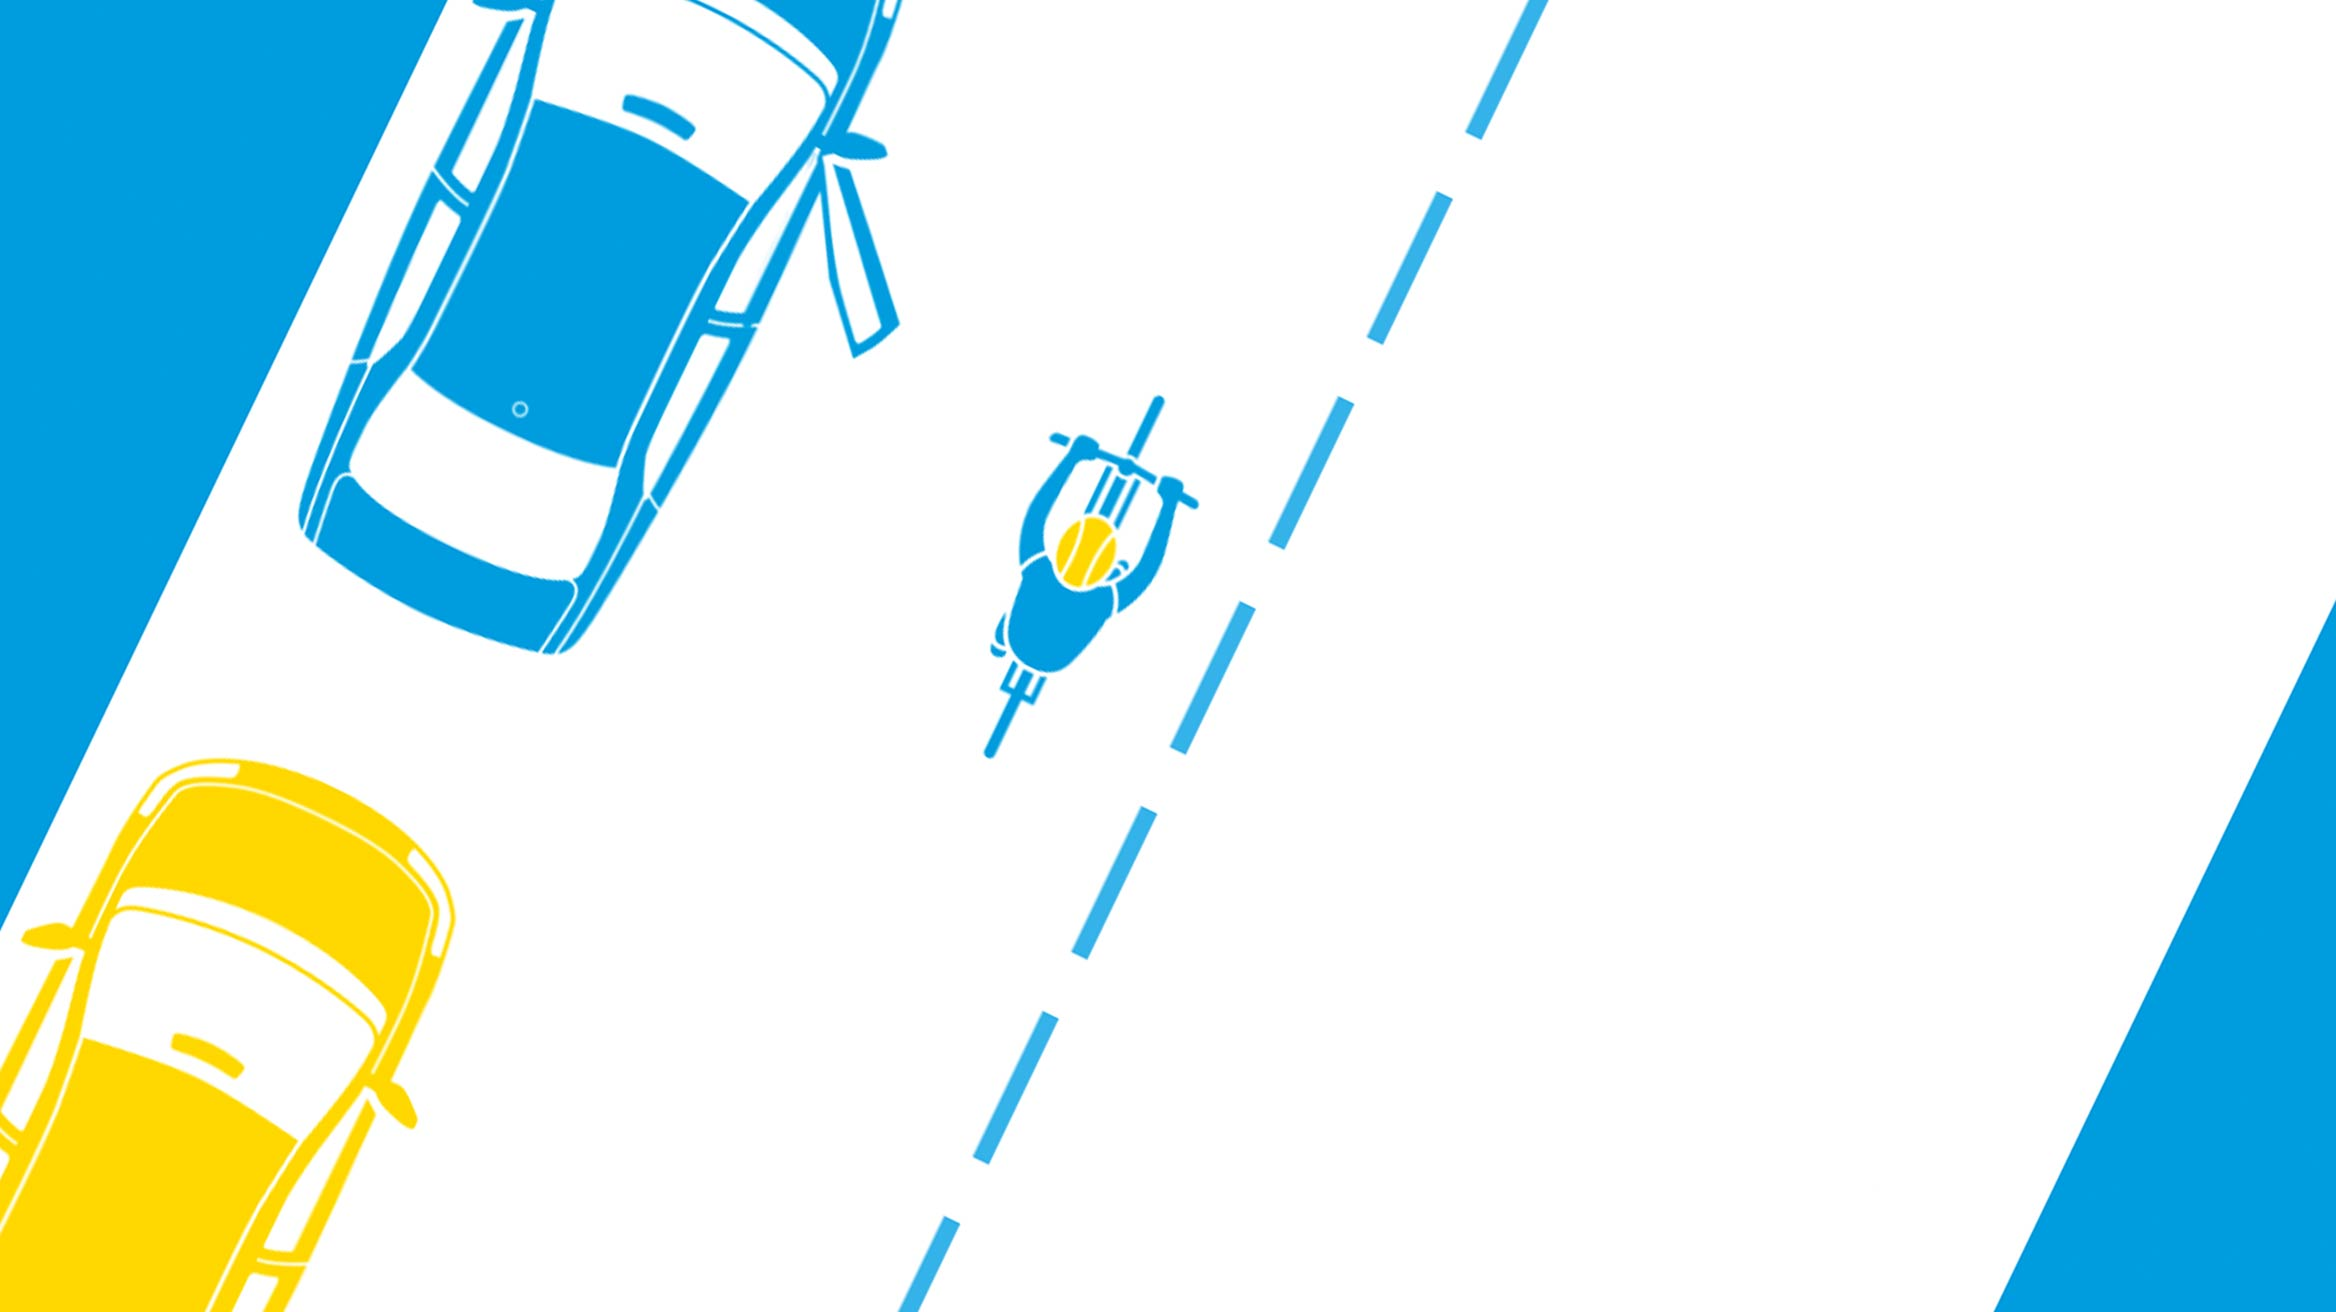 Top down cartoon image of bicycle rider riding past a parked car with its door open with a yellow car parked behind it